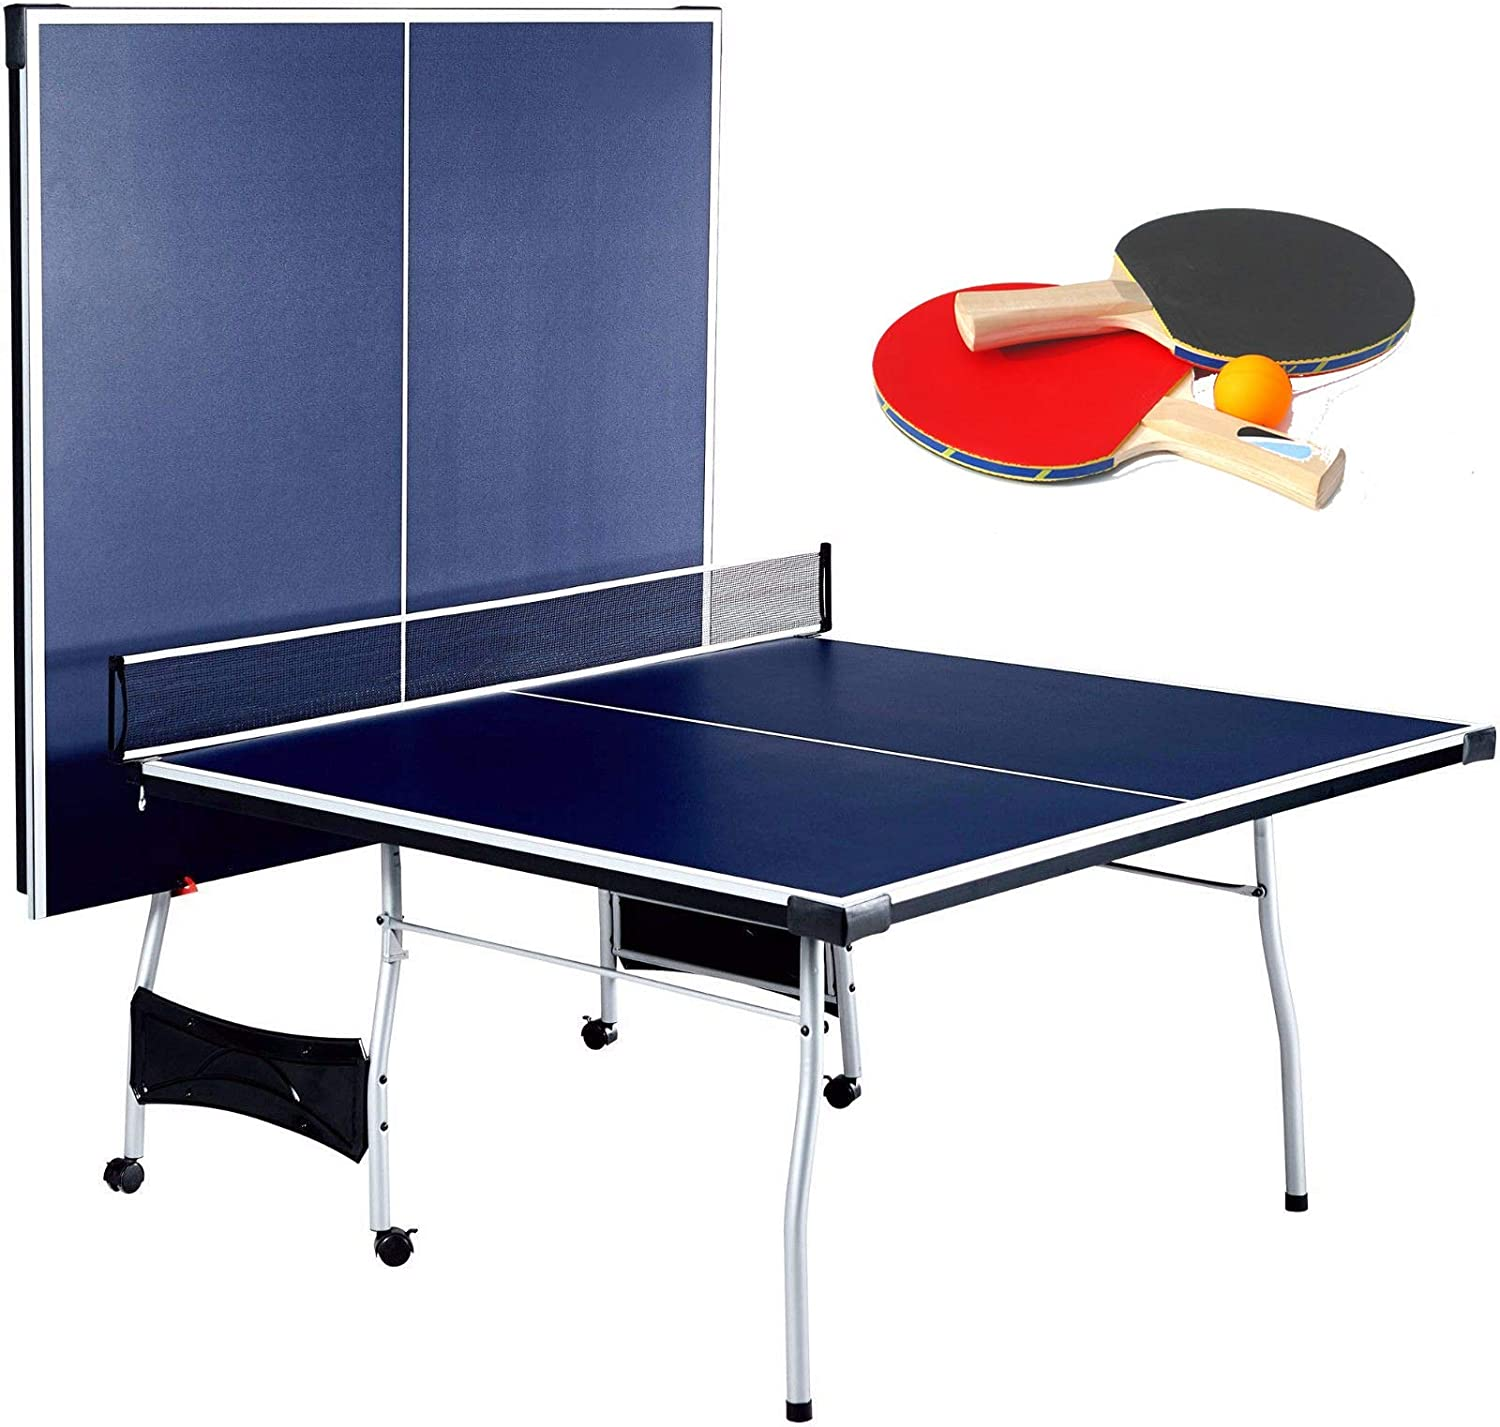 Amazon Com Selva Foldable 4 Piece Table Tennis Ping Pong Play Official Tournament Size 9 X 5 With Net Posts Paddles 2 Ball Quick Setup Heavy Duty Sturdy Durable